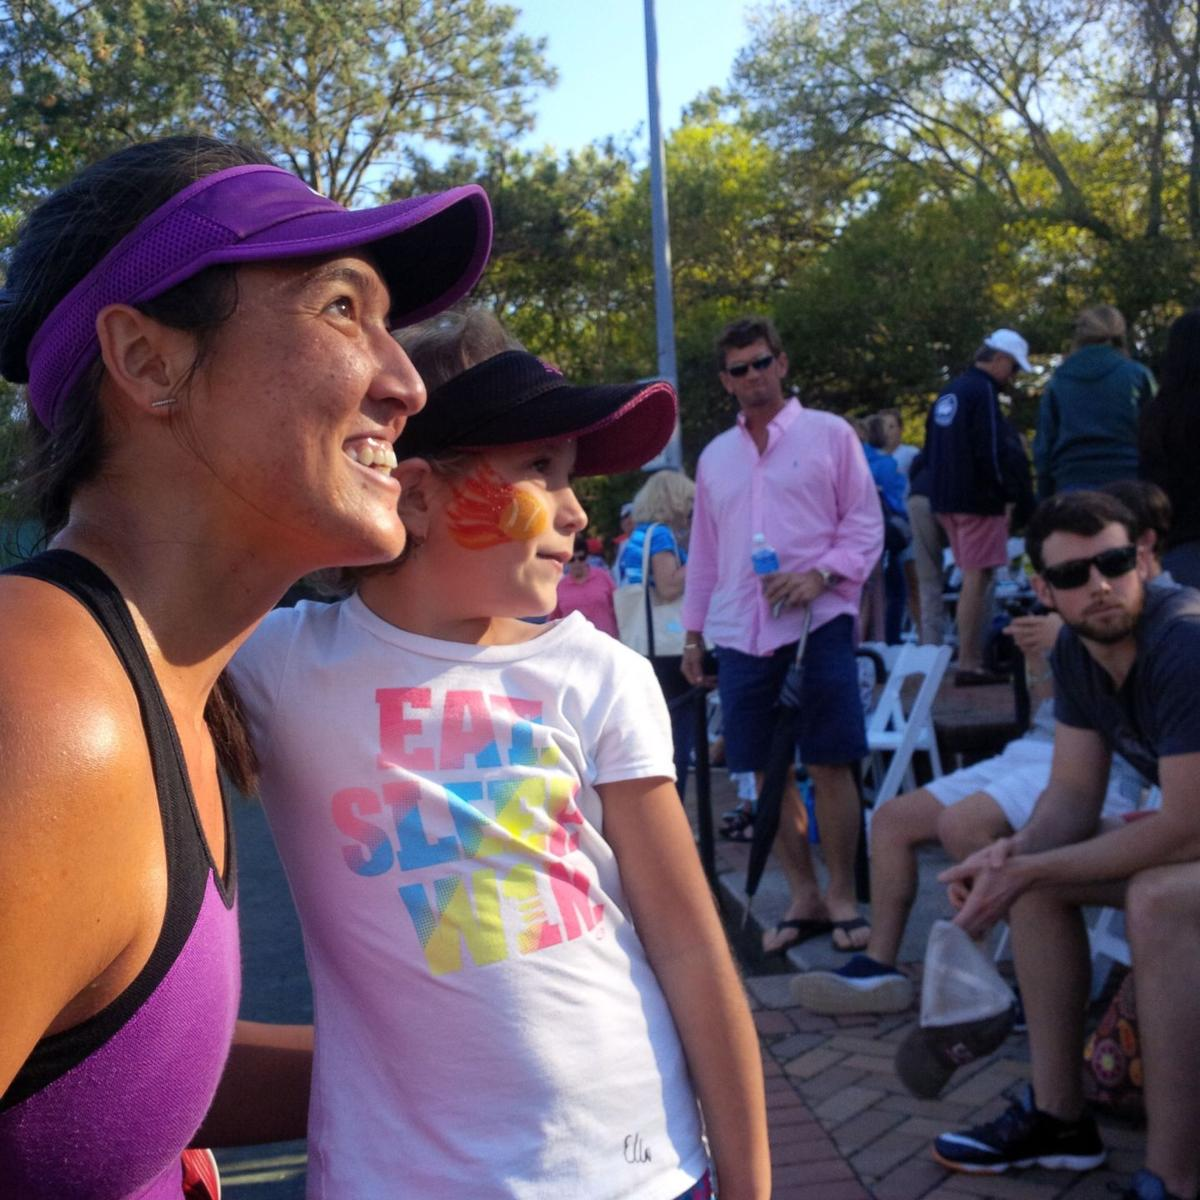 Crawford's power too much for Schnyder and her fans